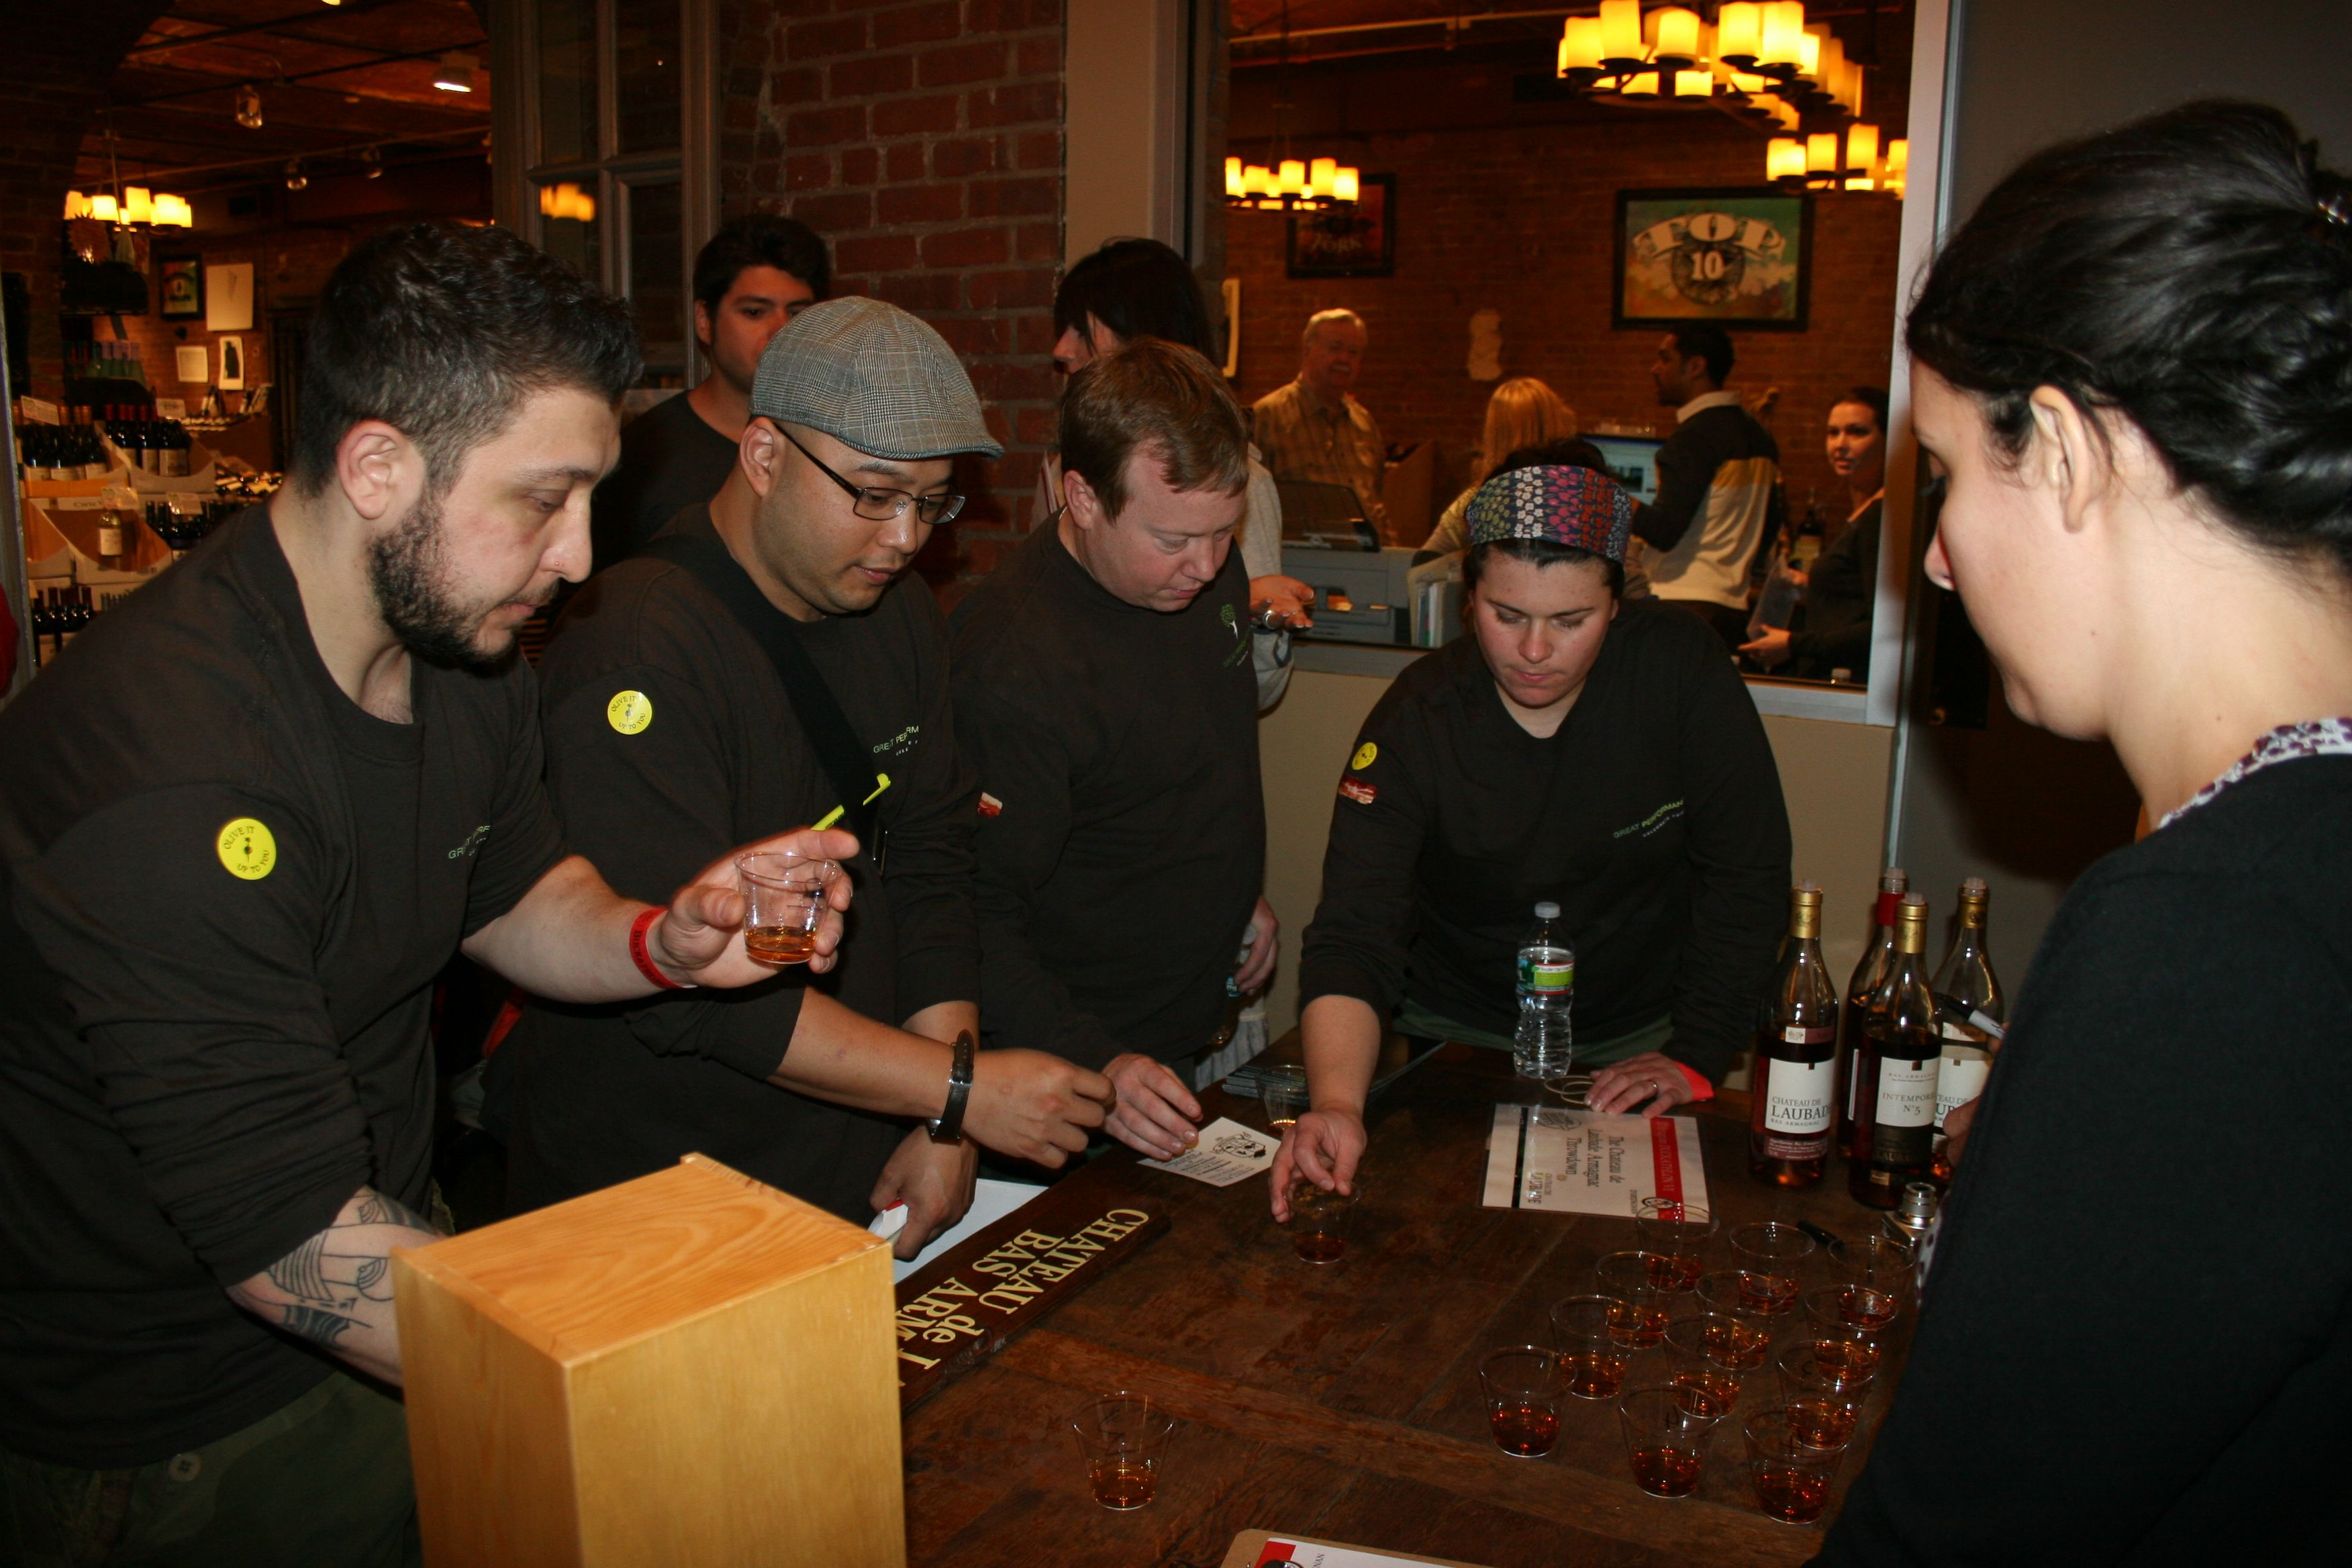 Teams bring intensity to the field of play at #Duckathlon. Here is an Armagnac tasting. It's all fun, games & food in the end. And prizes.